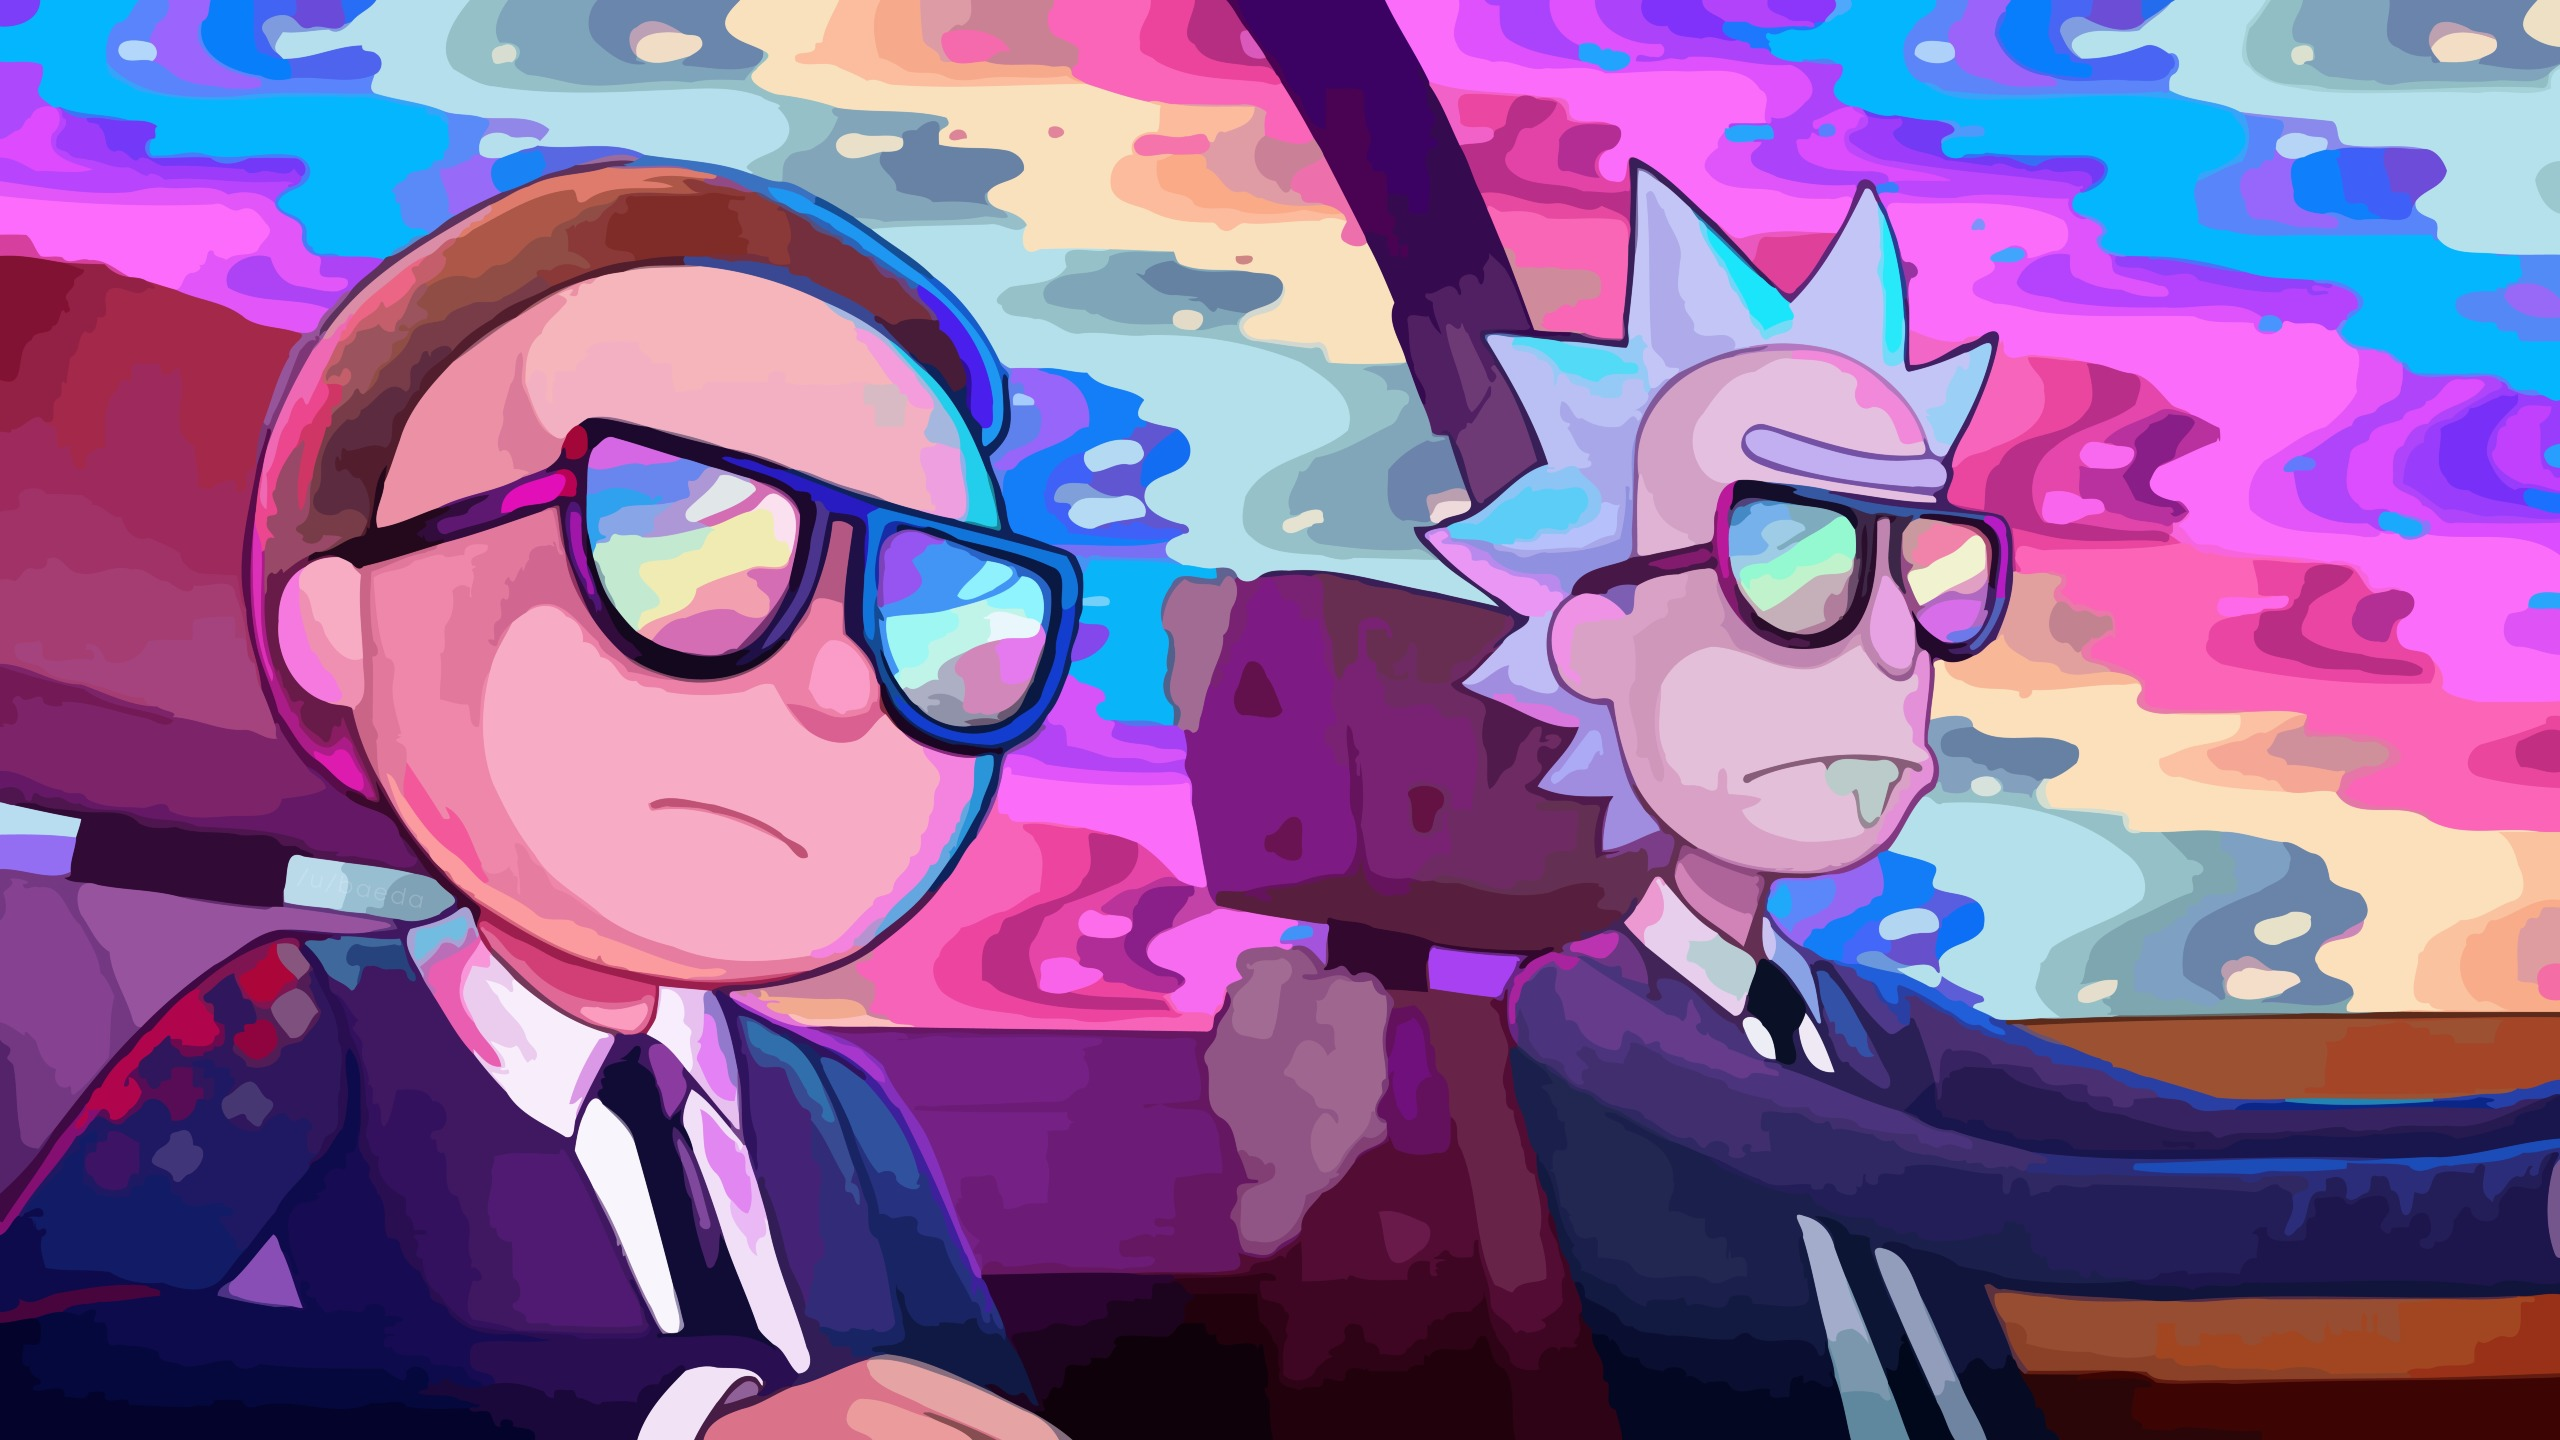 2560x1440 Rick And Morty Oh Mama Run The Jewels 1440p Resolution